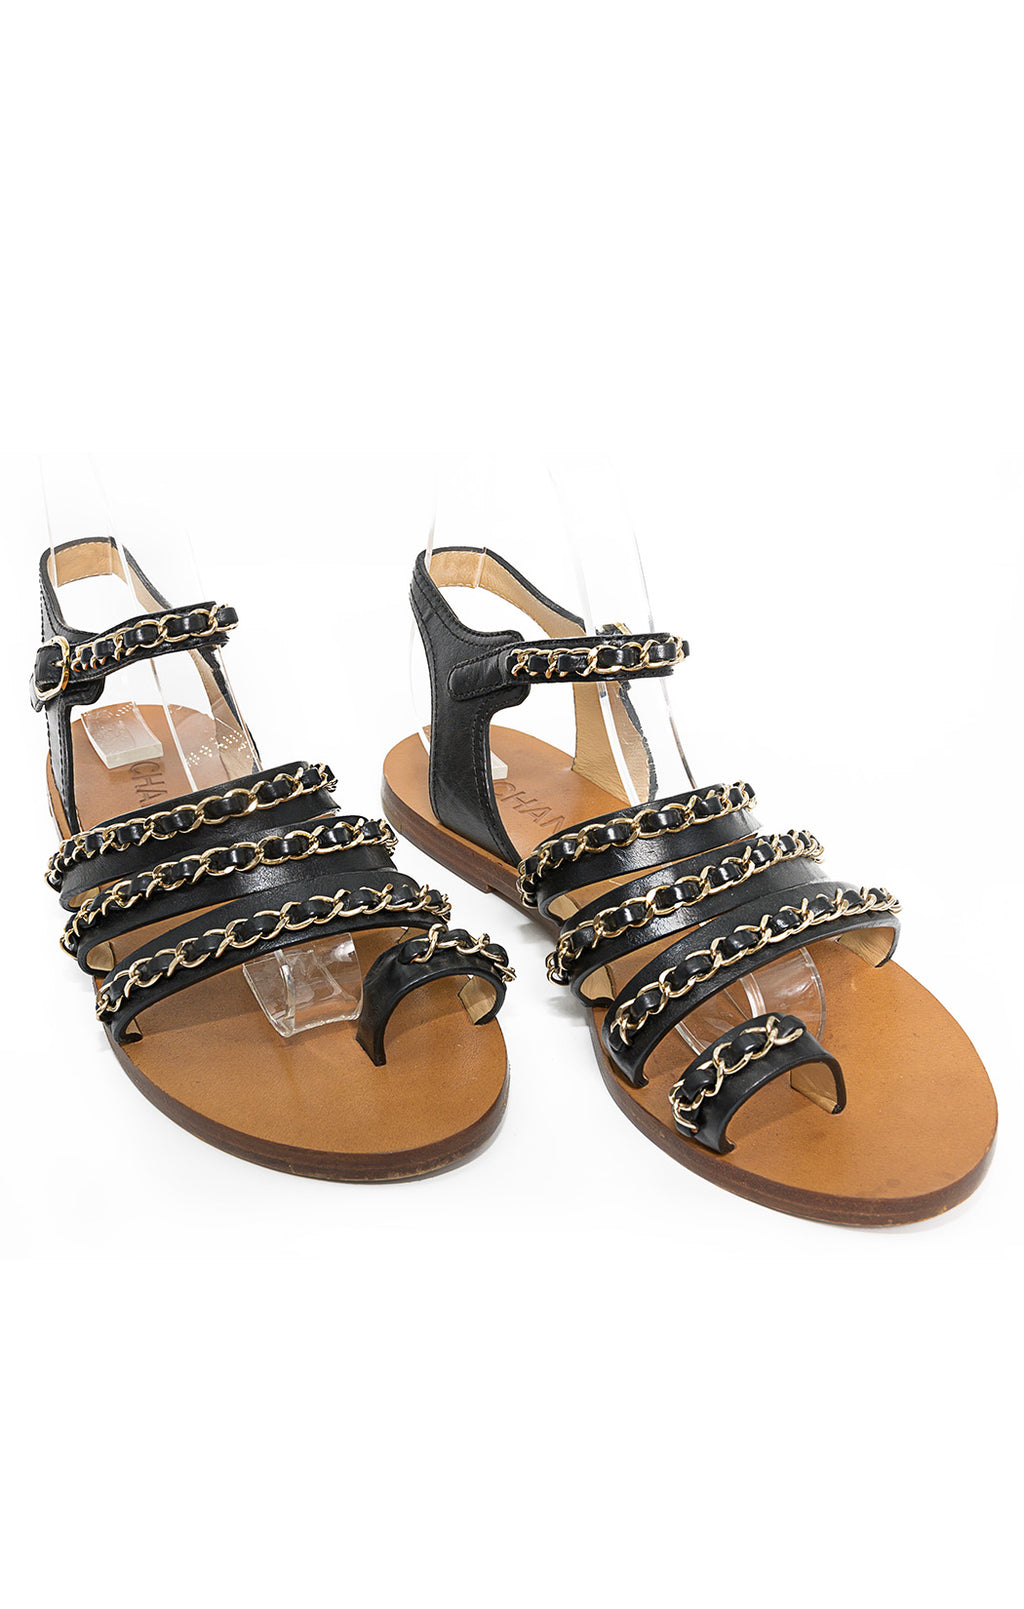 Front view of CHANEL  Sandals Size: 39/9